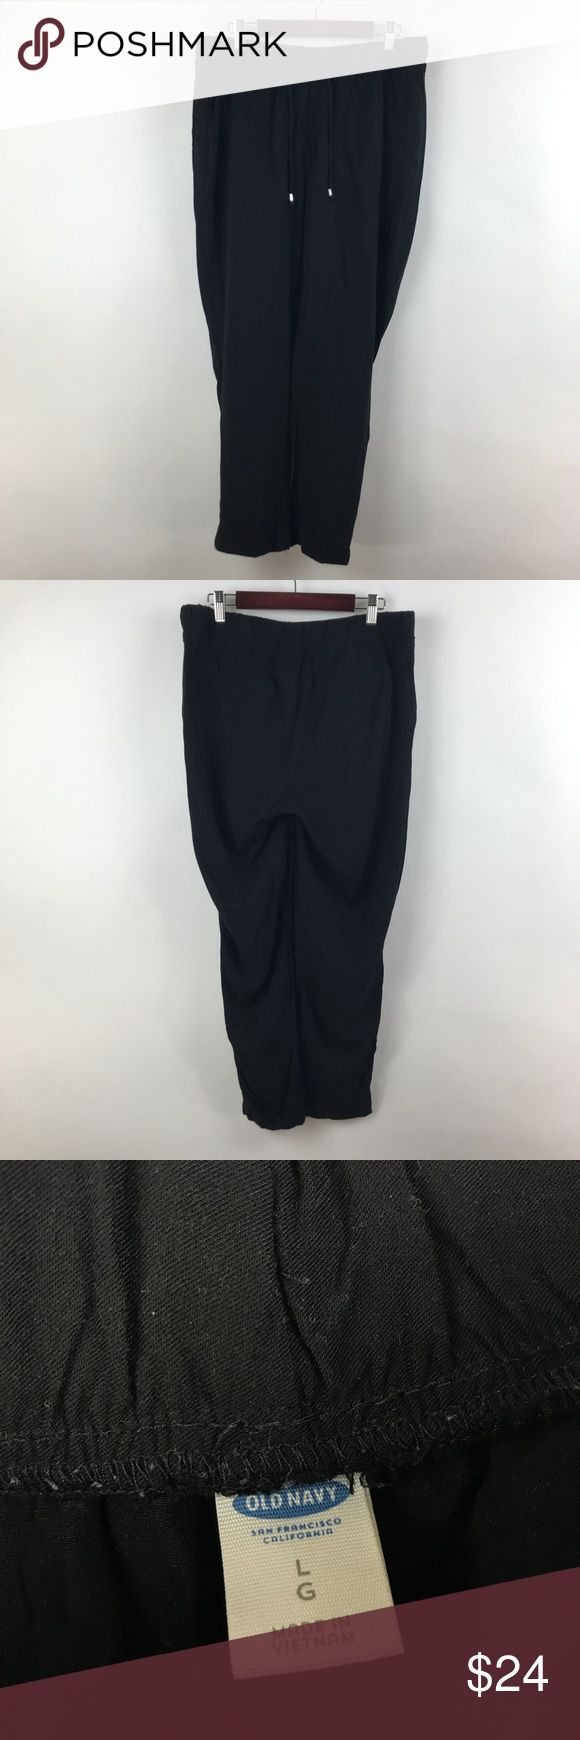 "Old Navy women's soft pants Sz L black 438 Old Navy Women's Soft Cropped Black Elastic Waist Lounge Pants Size Large   Measurements: Waist:  17""  Flat Across Has elastic for additional stretch Rise:  10""  Long Inseam:  25""  Long  In good preowned condition with no known flaws and light overall wear. Old Navy Pants Ankle & Cropped"